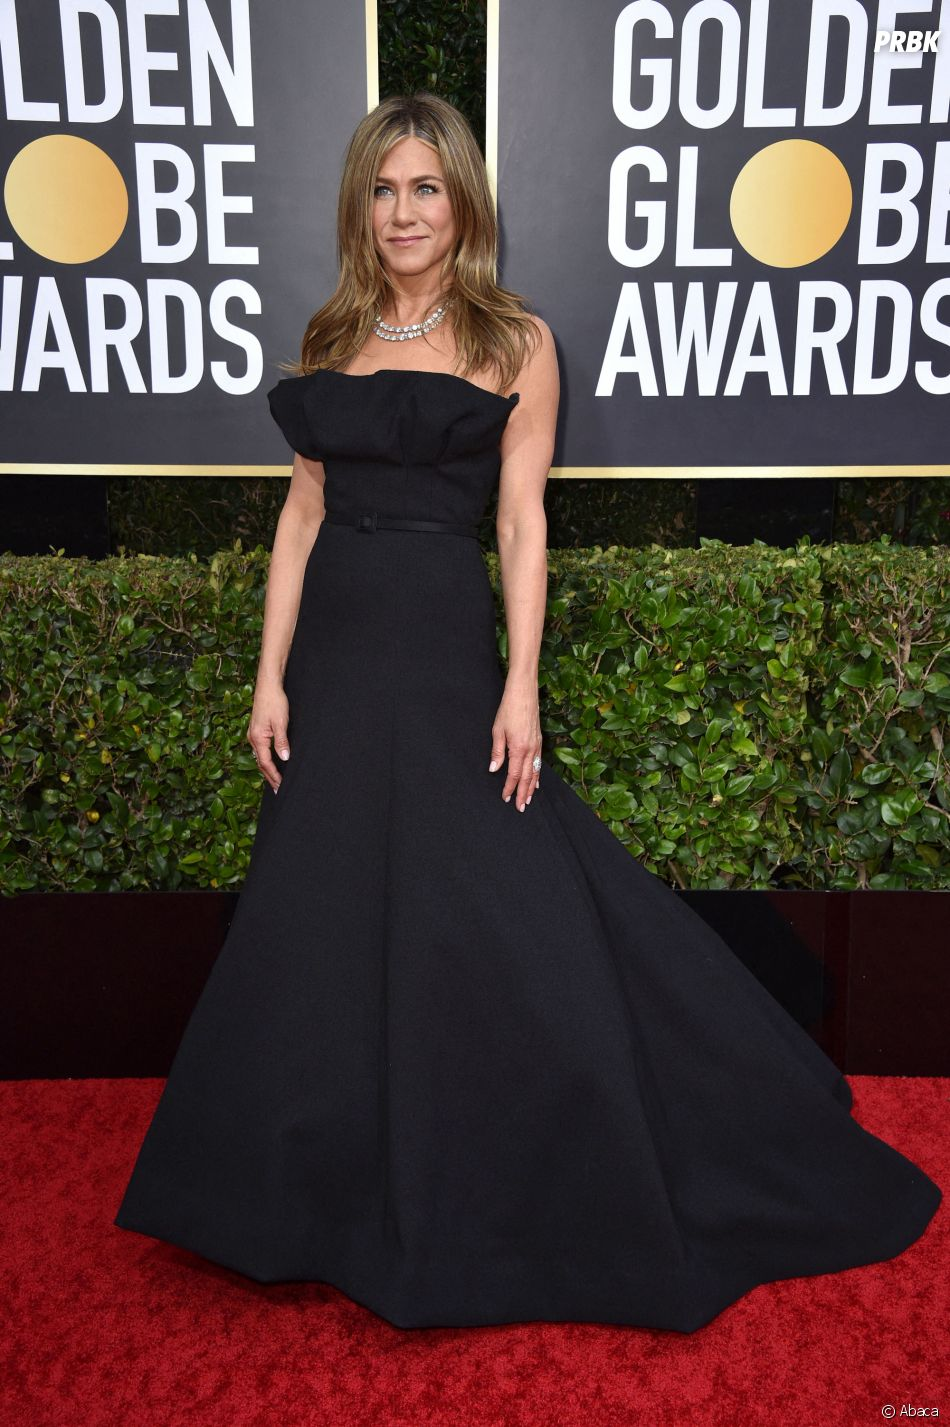 Jennifer Aniston sur le tapis rouge des Golden Globes 2020 le 5 janvier à Los Angeles